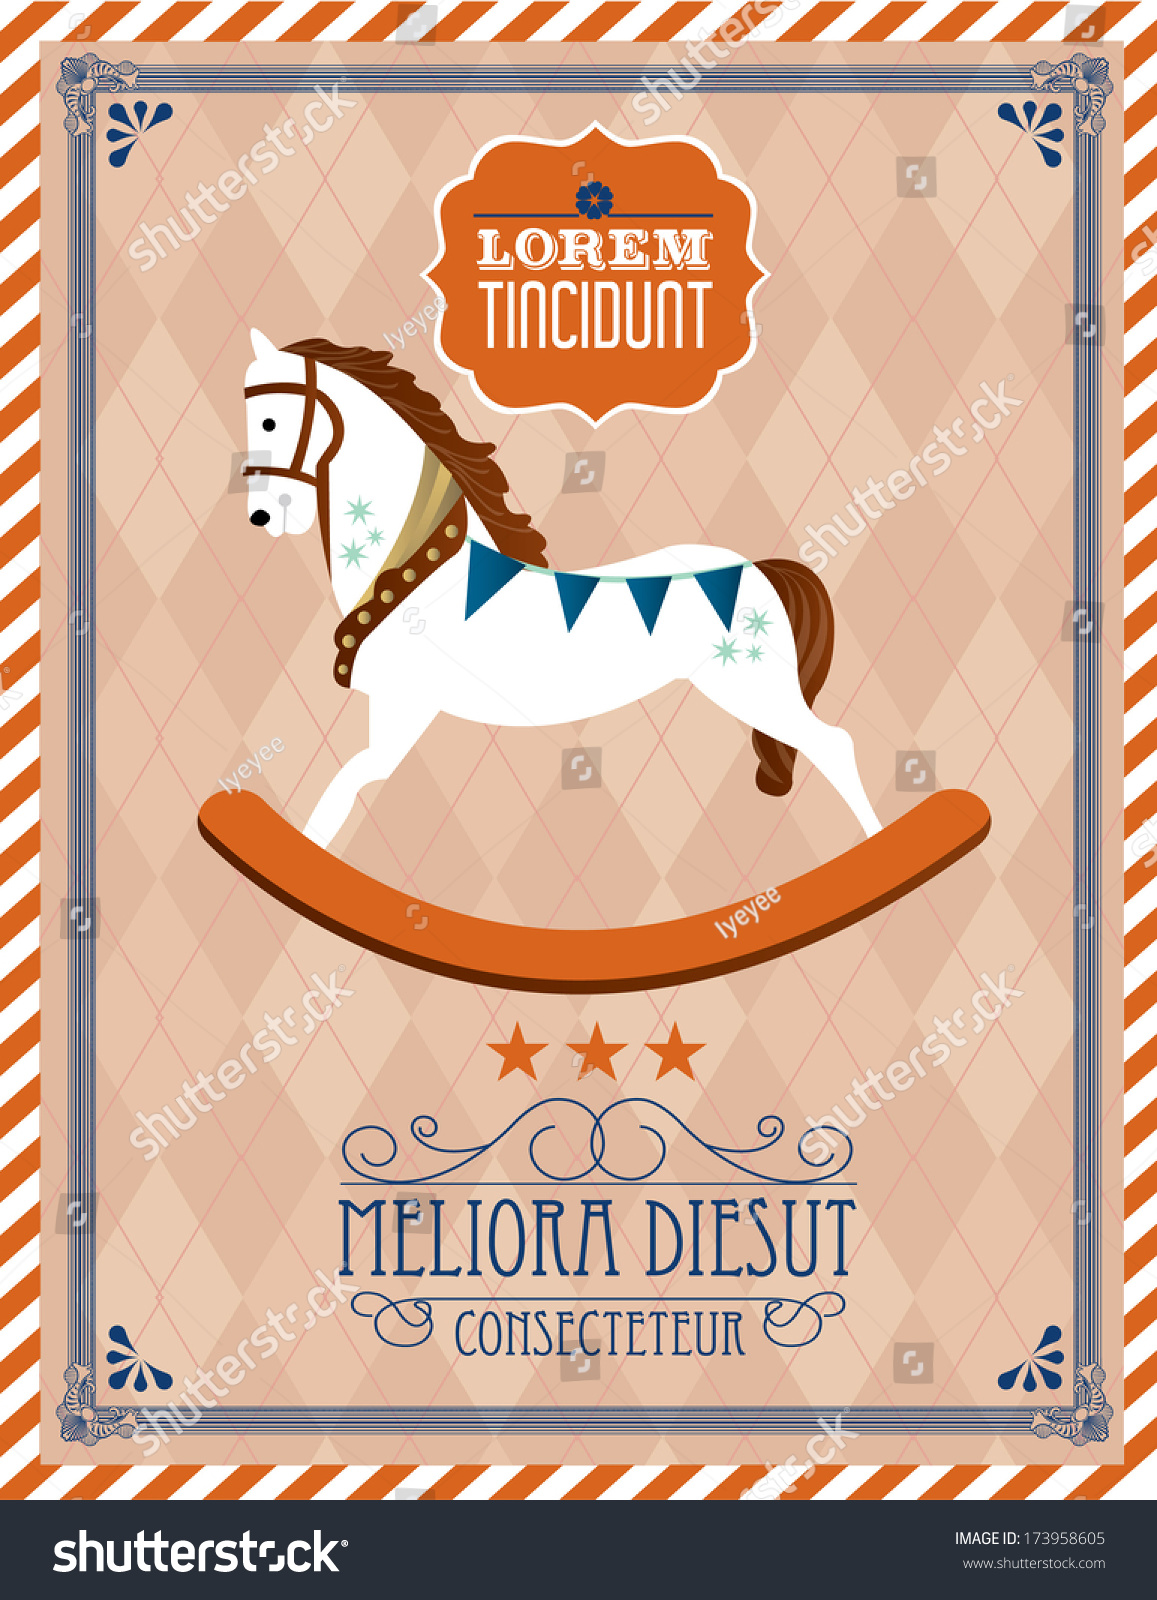 Rocking Horse Template Vectorillustration Stock Vector 173958605